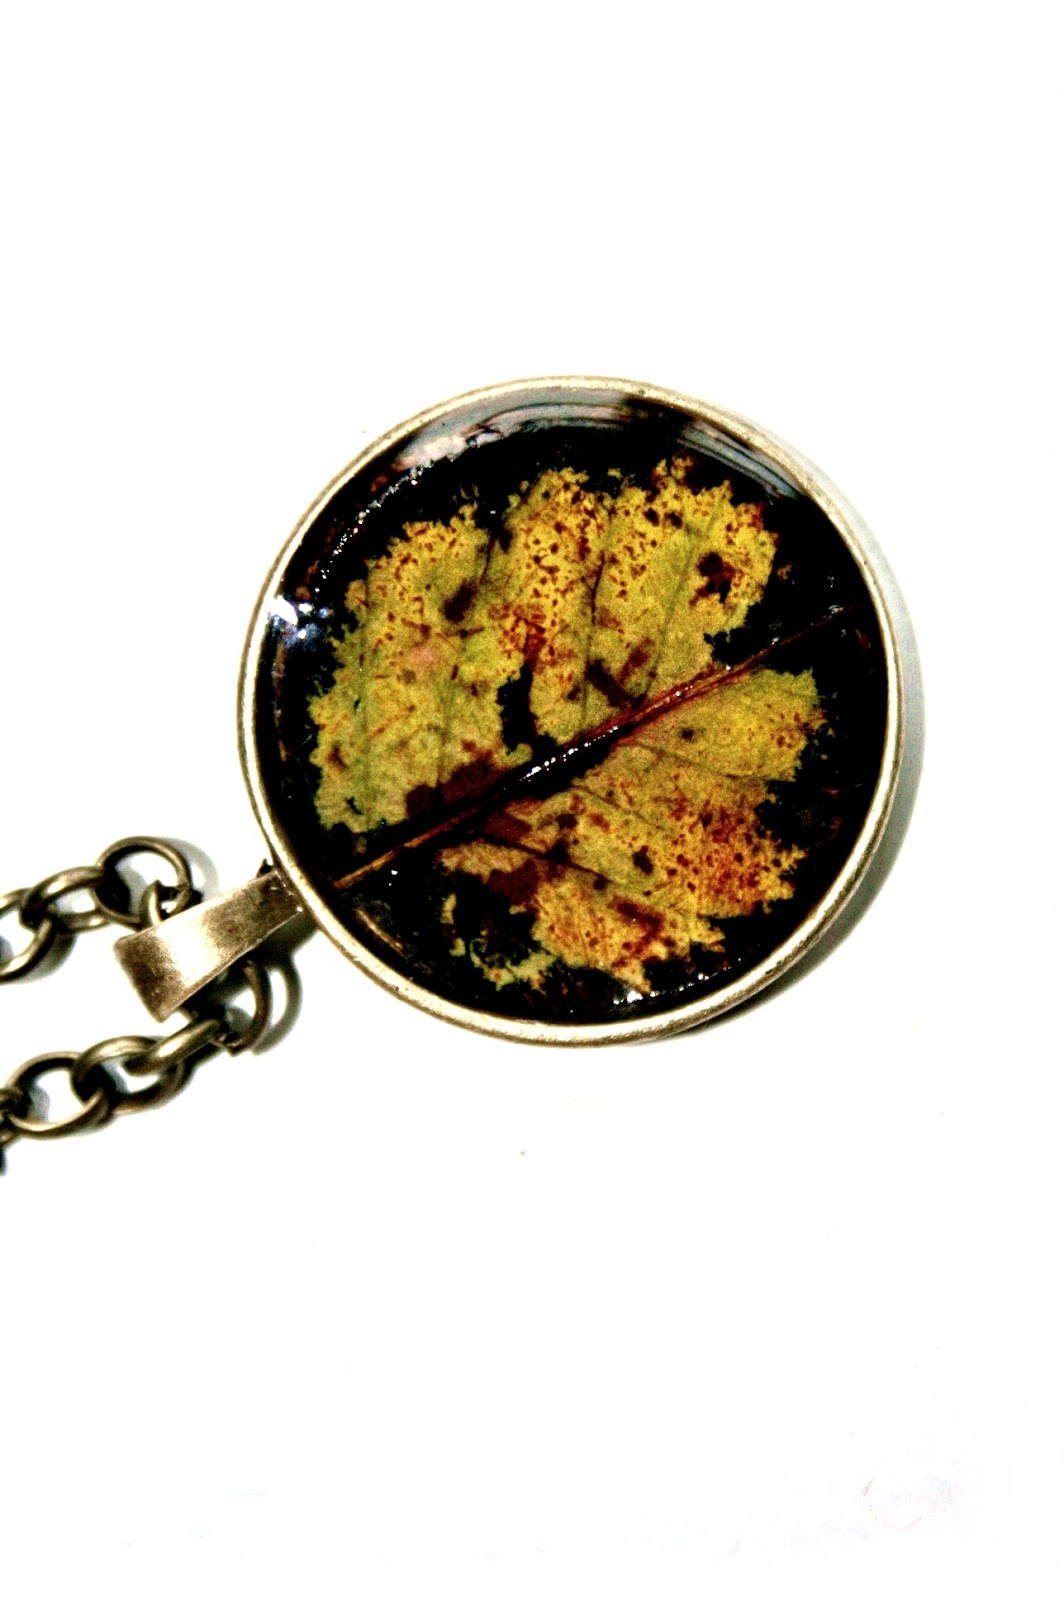 Round leaf encased in resin - amazing combination of colours